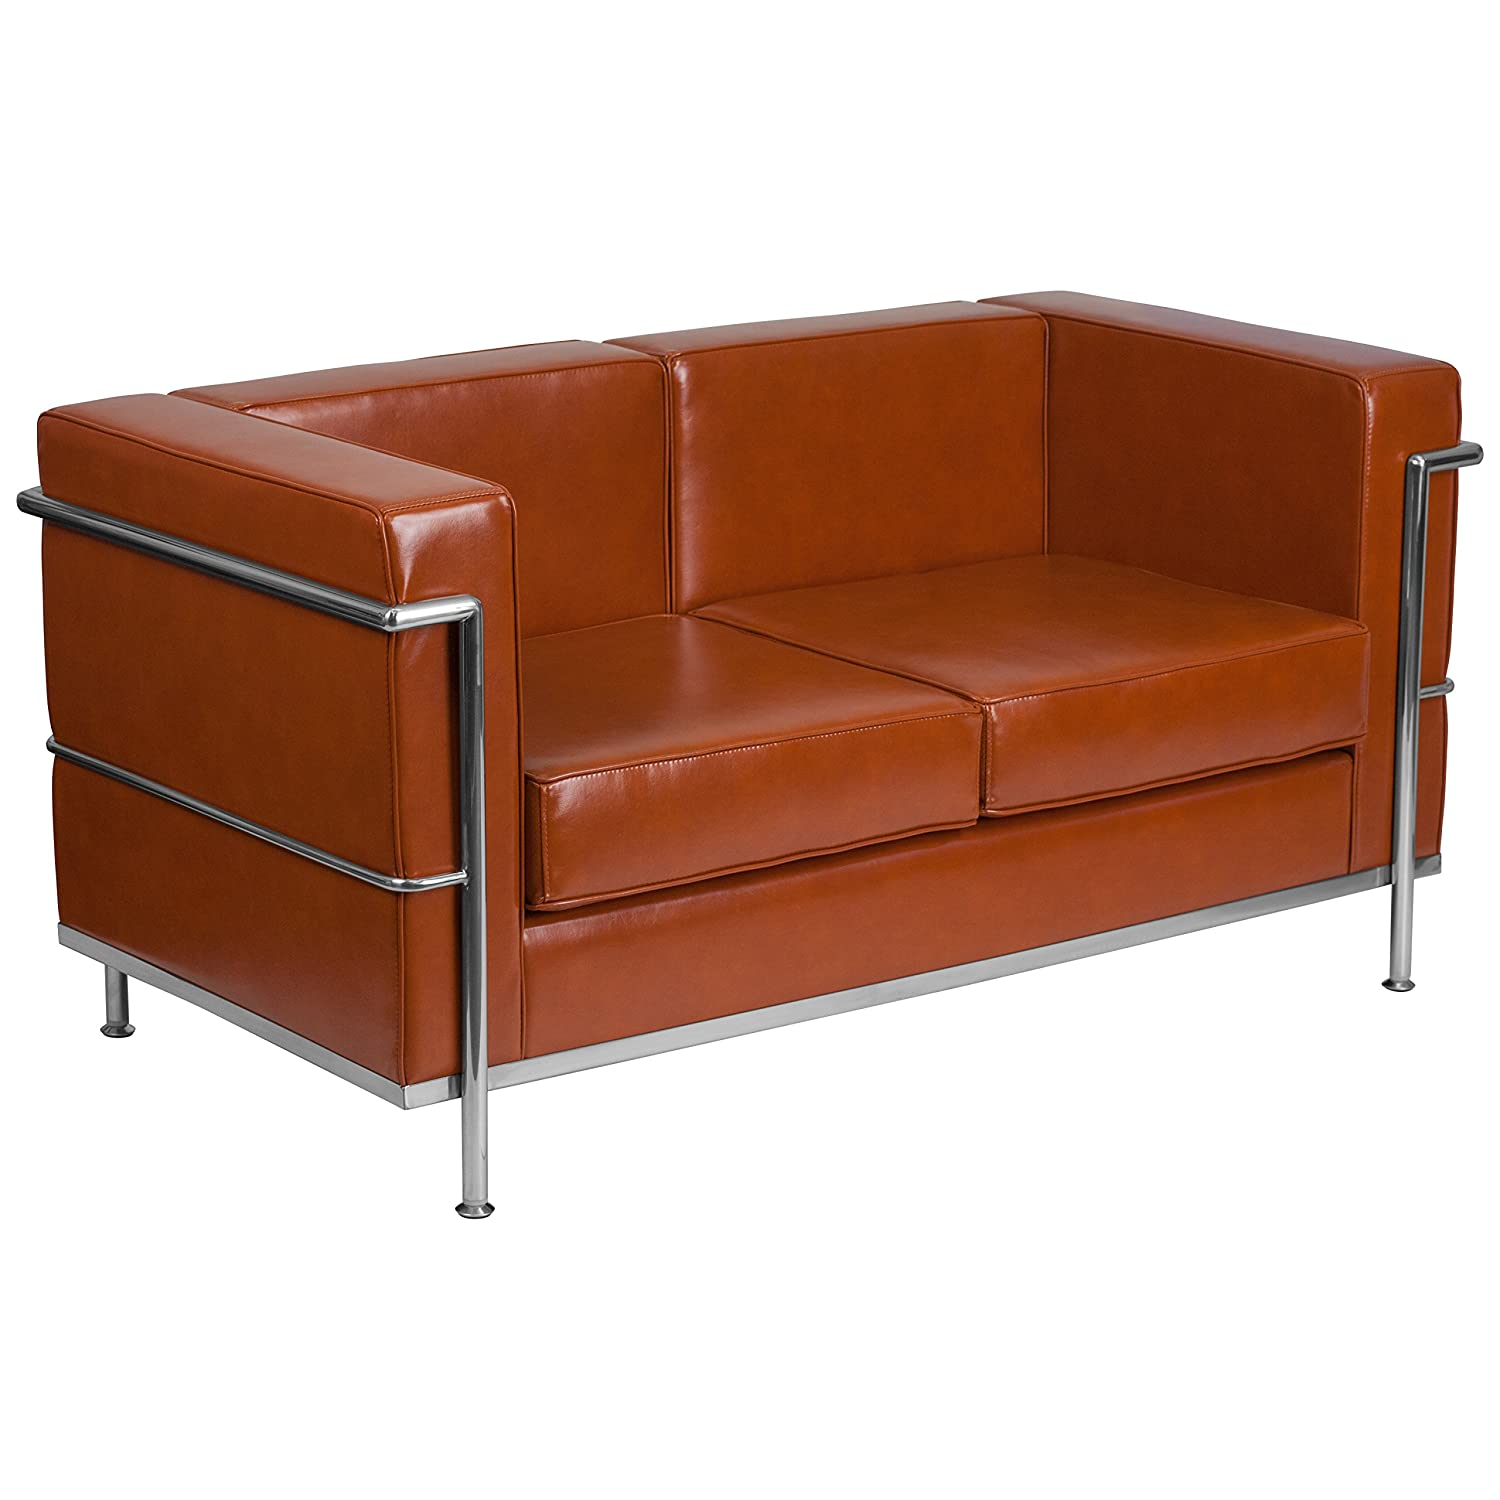 Phenomenal Flash Furniture Hercules Regal Series Contemporary Cognac Leather Loveseat With Encasing Frame Gmtry Best Dining Table And Chair Ideas Images Gmtryco